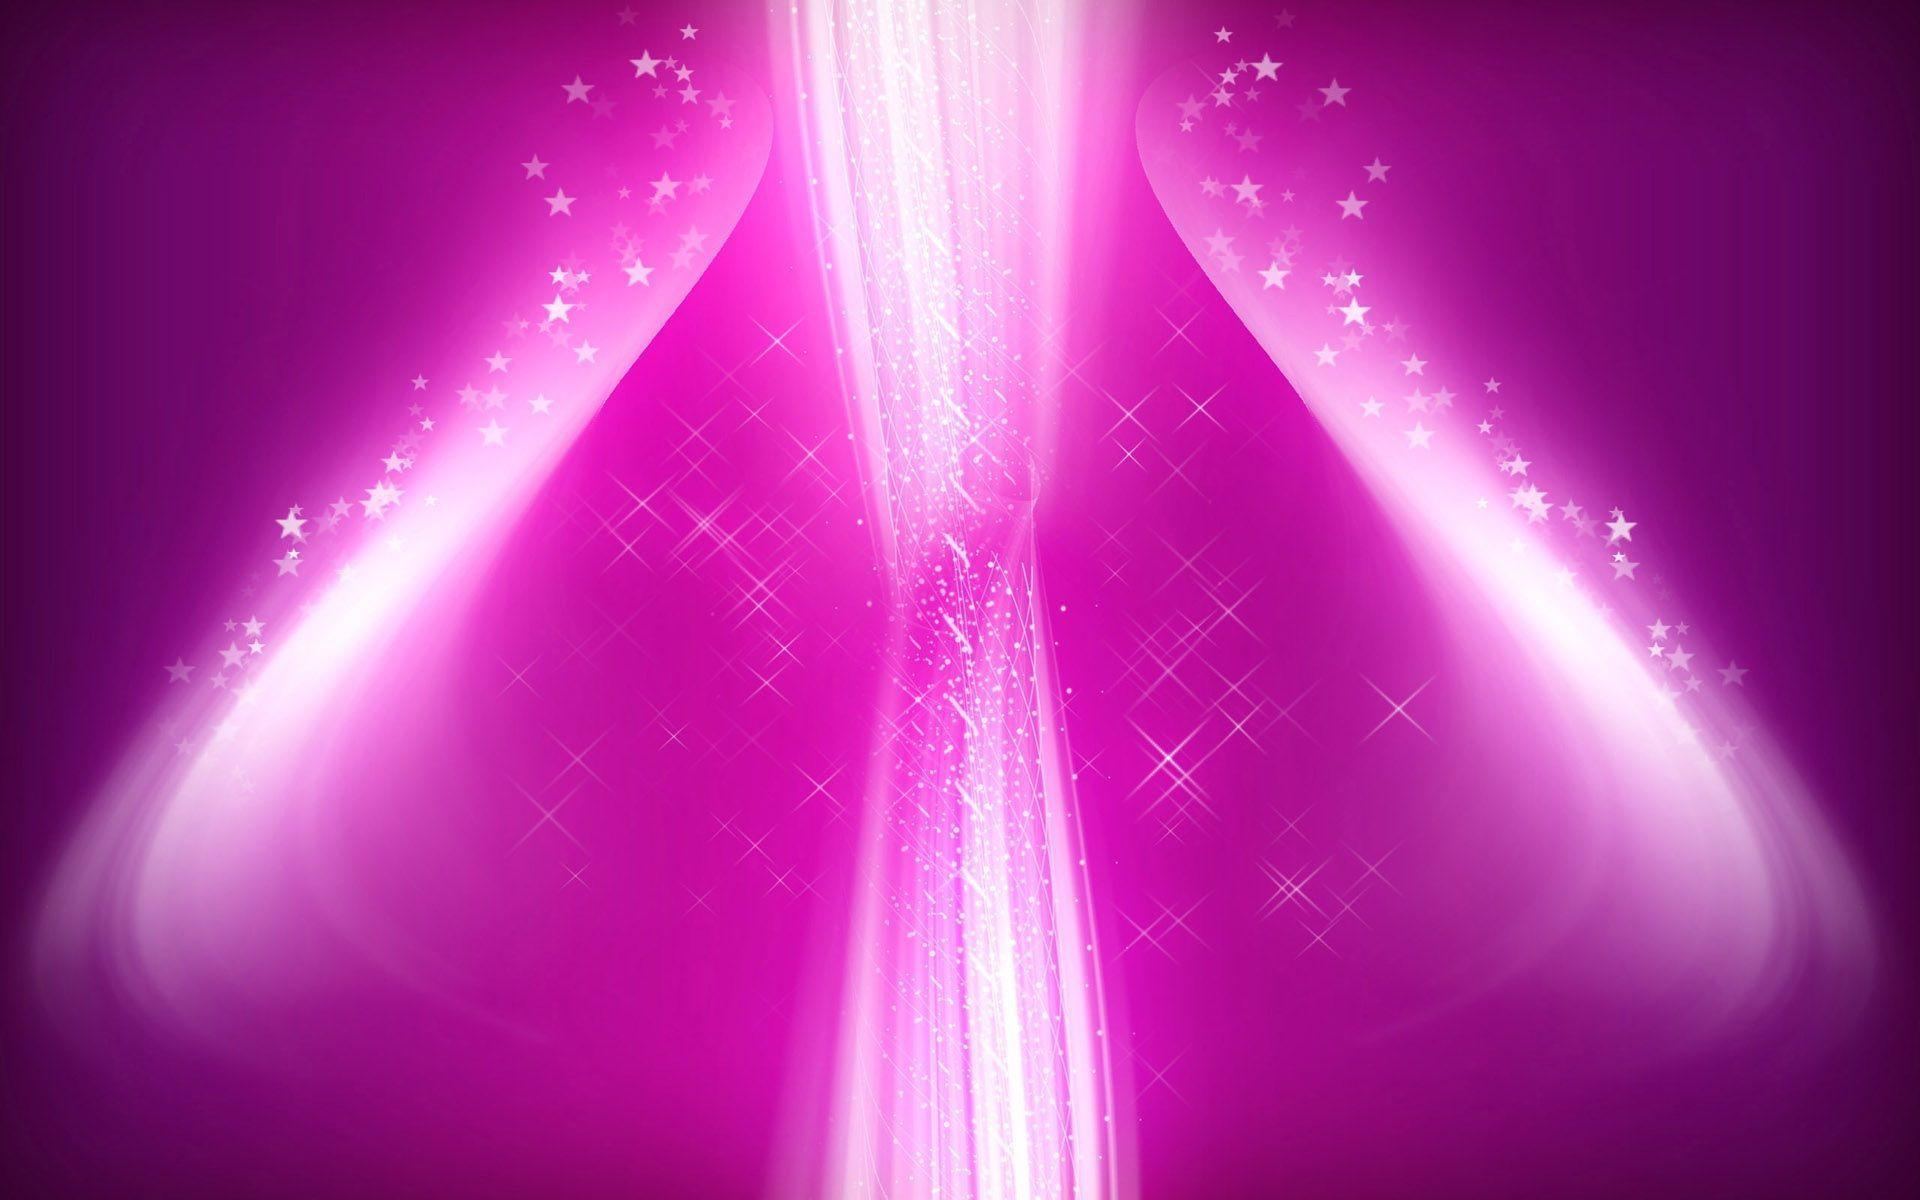 awesome abstract wallpapers pink - photo #5